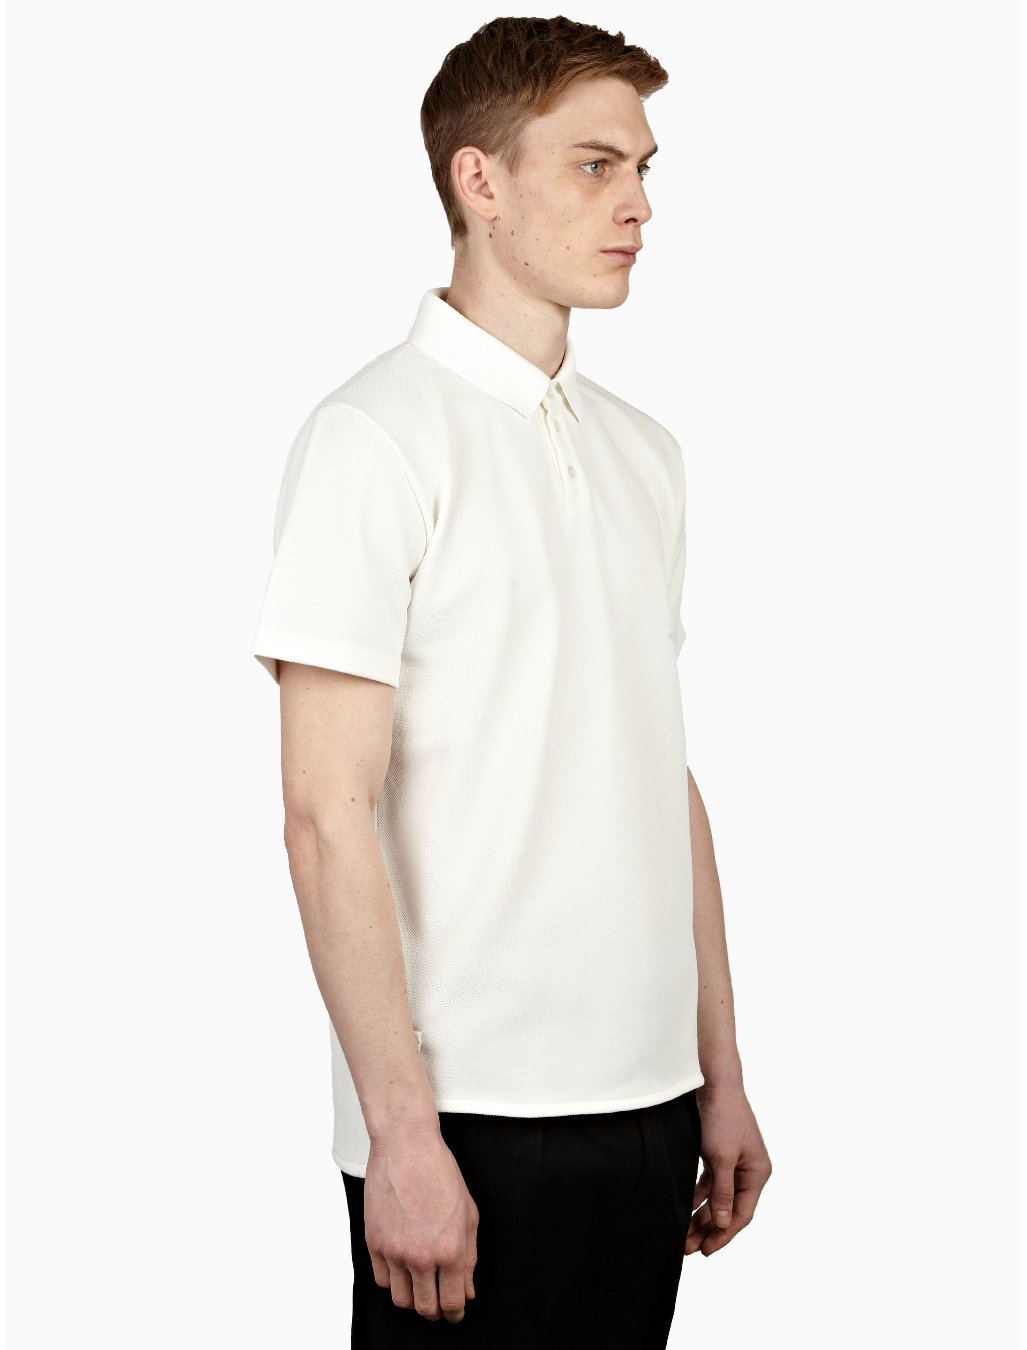 jil sander mens white textured polo shirt in white for men. Black Bedroom Furniture Sets. Home Design Ideas